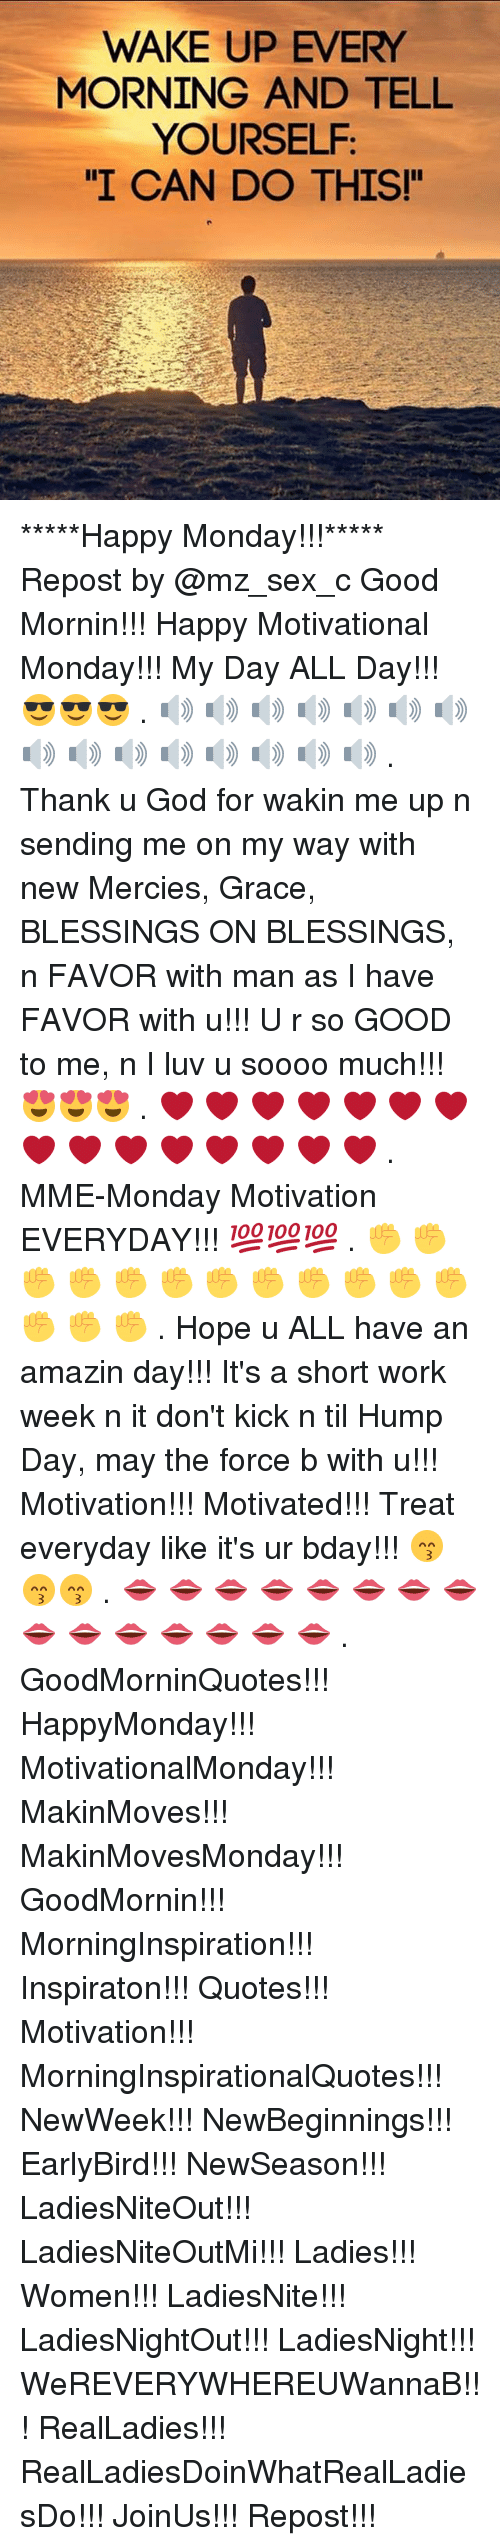 "Short Work Week: WAKE UP EVERY  MORNING AND TELL  YOURSELF  I CAN DO THIS!"" *****Happy Monday!!!***** Repost by @mz_sex_c Good Mornin!!! Happy Motivational Monday!!! My Day ALL Day!!! 😎😎😎 . 🔊 🔊 🔊 🔊 🔊 🔊 🔊 🔊 🔊 🔊 🔊 🔊 🔊 🔊 🔊 . Thank u God for wakin me up n sending me on my way with new Mercies, Grace, BLESSINGS ON BLESSINGS, n FAVOR with man as I have FAVOR with u!!! U r so GOOD to me, n I luv u soooo much!!! 😍😍😍 . ❤ ❤ ❤ ❤ ❤ ❤ ❤ ❤ ❤ ❤ ❤ ❤ ❤ ❤ ❤ . MME-Monday Motivation EVERYDAY!!! 💯💯💯 . ✊ ✊ ✊ ✊ ✊ ✊ ✊ ✊ ✊ ✊ ✊ ✊ ✊ ✊ ✊ . Hope u ALL have an amazin day!!! It's a short work week n it don't kick n til Hump Day, may the force b with u!!! Motivation!!! Motivated!!! Treat everyday like it's ur bday!!! 😙😙😙 . 👄 👄 👄 👄 👄 👄 👄 👄 👄 👄 👄 👄 👄 👄 👄 . GoodMorninQuotes!!! HappyMonday!!! MotivationalMonday!!! MakinMoves!!! MakinMovesMonday!!! GoodMornin!!! MorningInspiration!!! Inspiraton!!! Quotes!!! Motivation!!! MorningInspirationalQuotes!!! NewWeek!!! NewBeginnings!!! EarlyBird!!! NewSeason!!! LadiesNiteOut!!! LadiesNiteOutMi!!! Ladies!!! Women!!! LadiesNite!!! LadiesNightOut!!! LadiesNight!!! WeREVERYWHEREUWannaB!!! RealLadies!!! RealLadiesDoinWhatRealLadiesDo!!! JoinUs!!! Repost!!!"